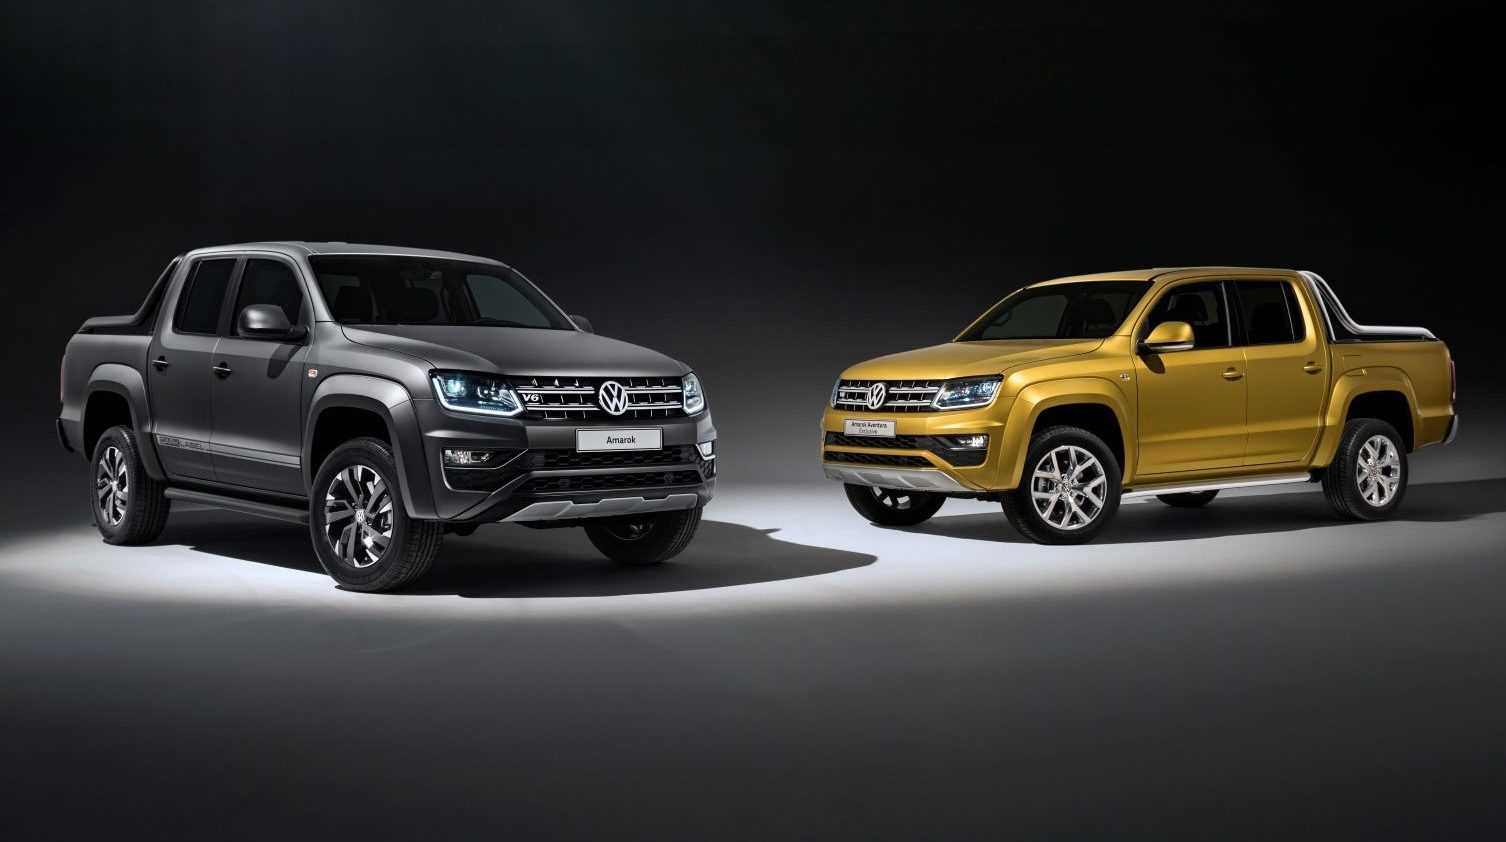 Volkswagen Amarok Aventura Exclusive Concept & Amarok Dark Label limited edition 2017